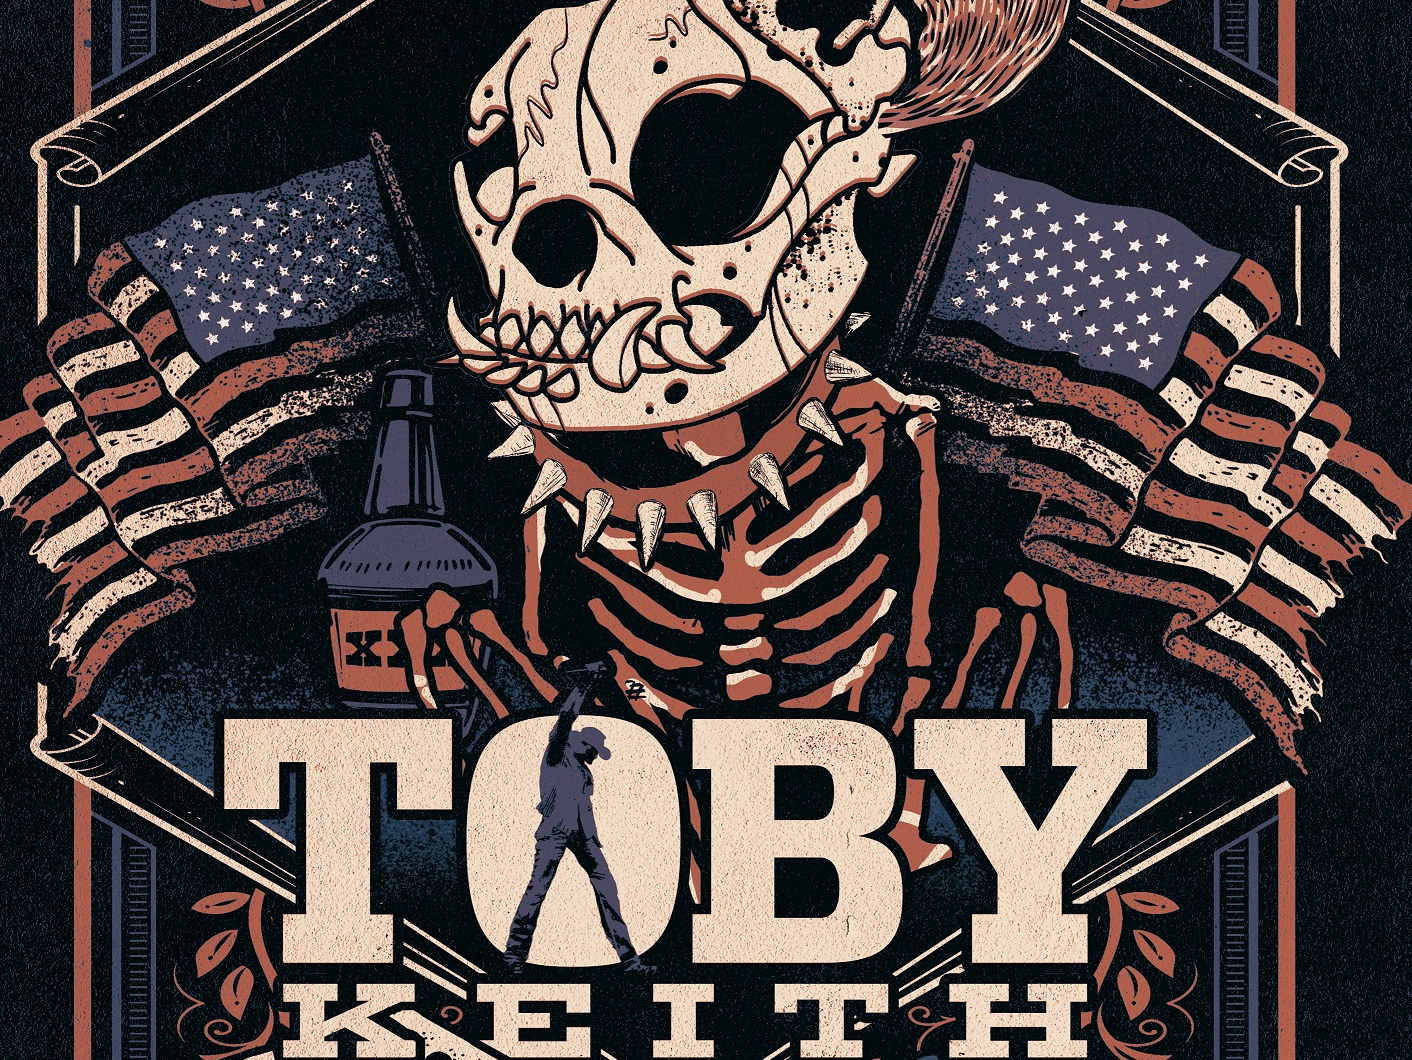 Toby Keith is coming to Kat Country!